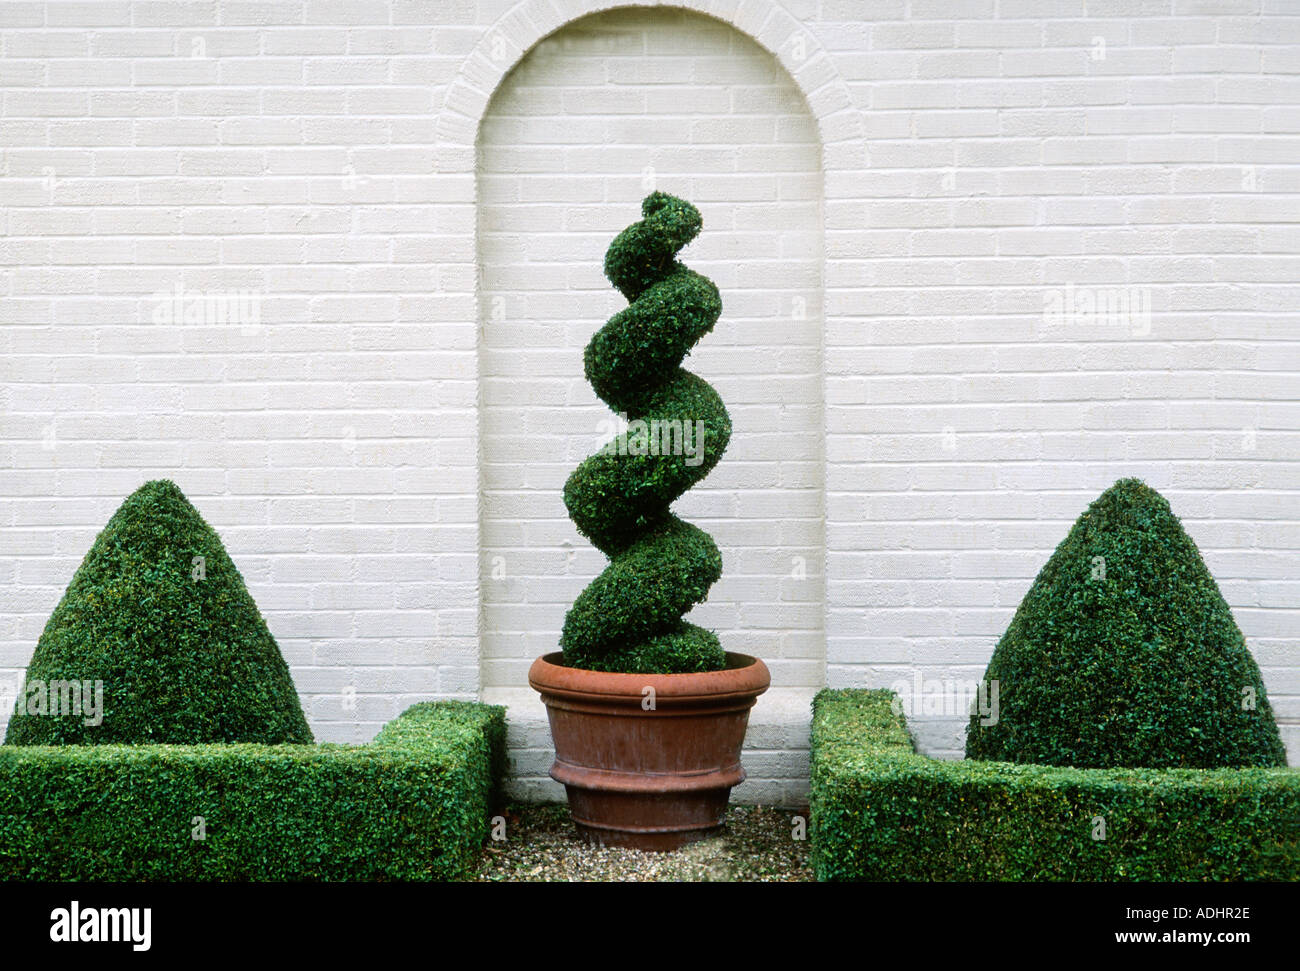 Garden Box Topiary Spiral Design Plants Geometric Wall Arch Clipped Stock Photo Alamy